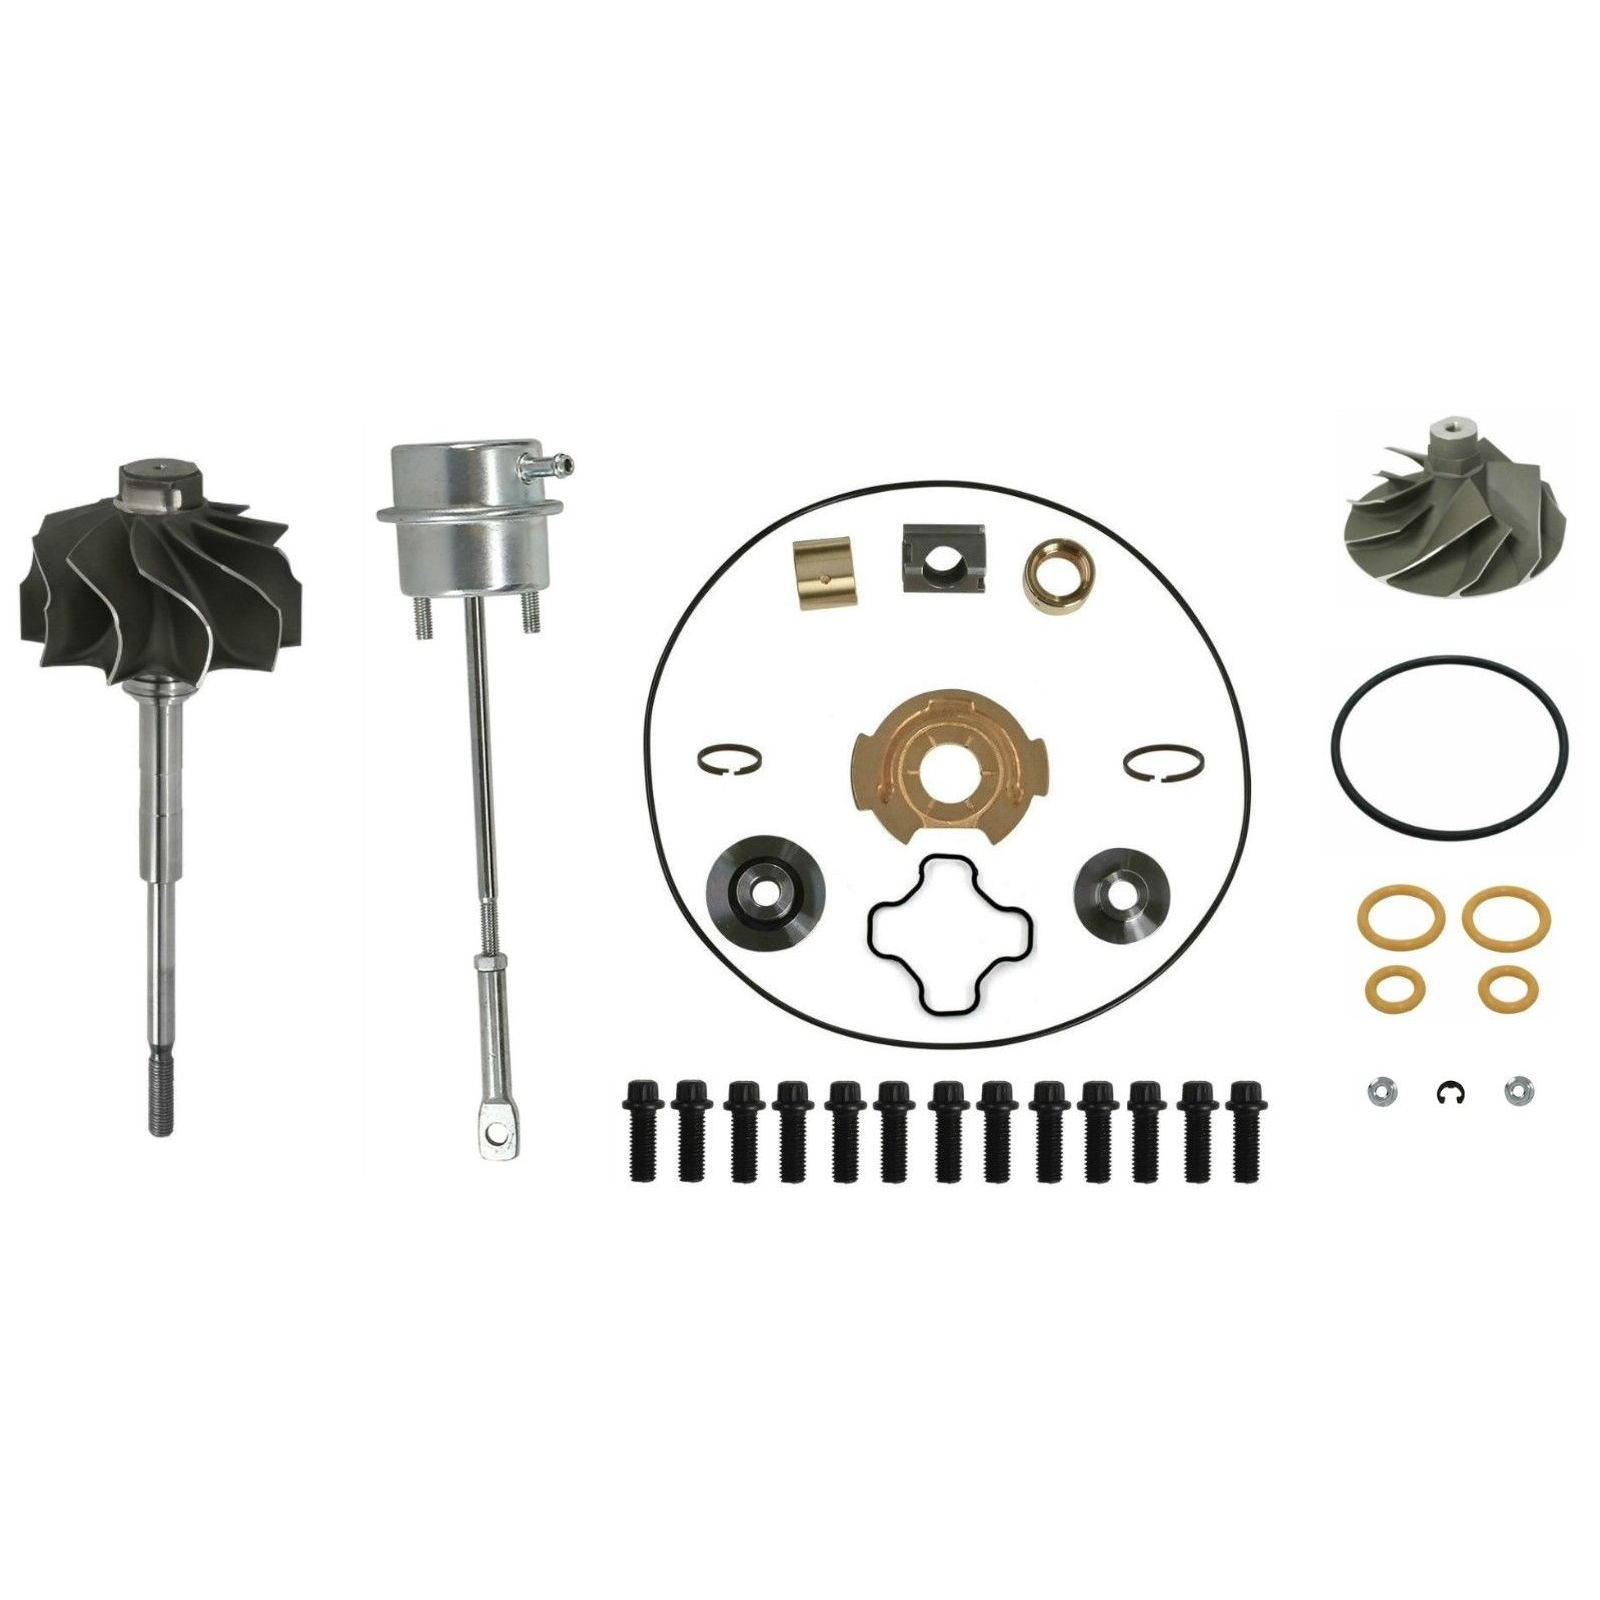 GTP38 Master Turbo Rebuild Kit Cast Compressor Wheel For 99-03 7.3L Ford Powerstroke Diesel